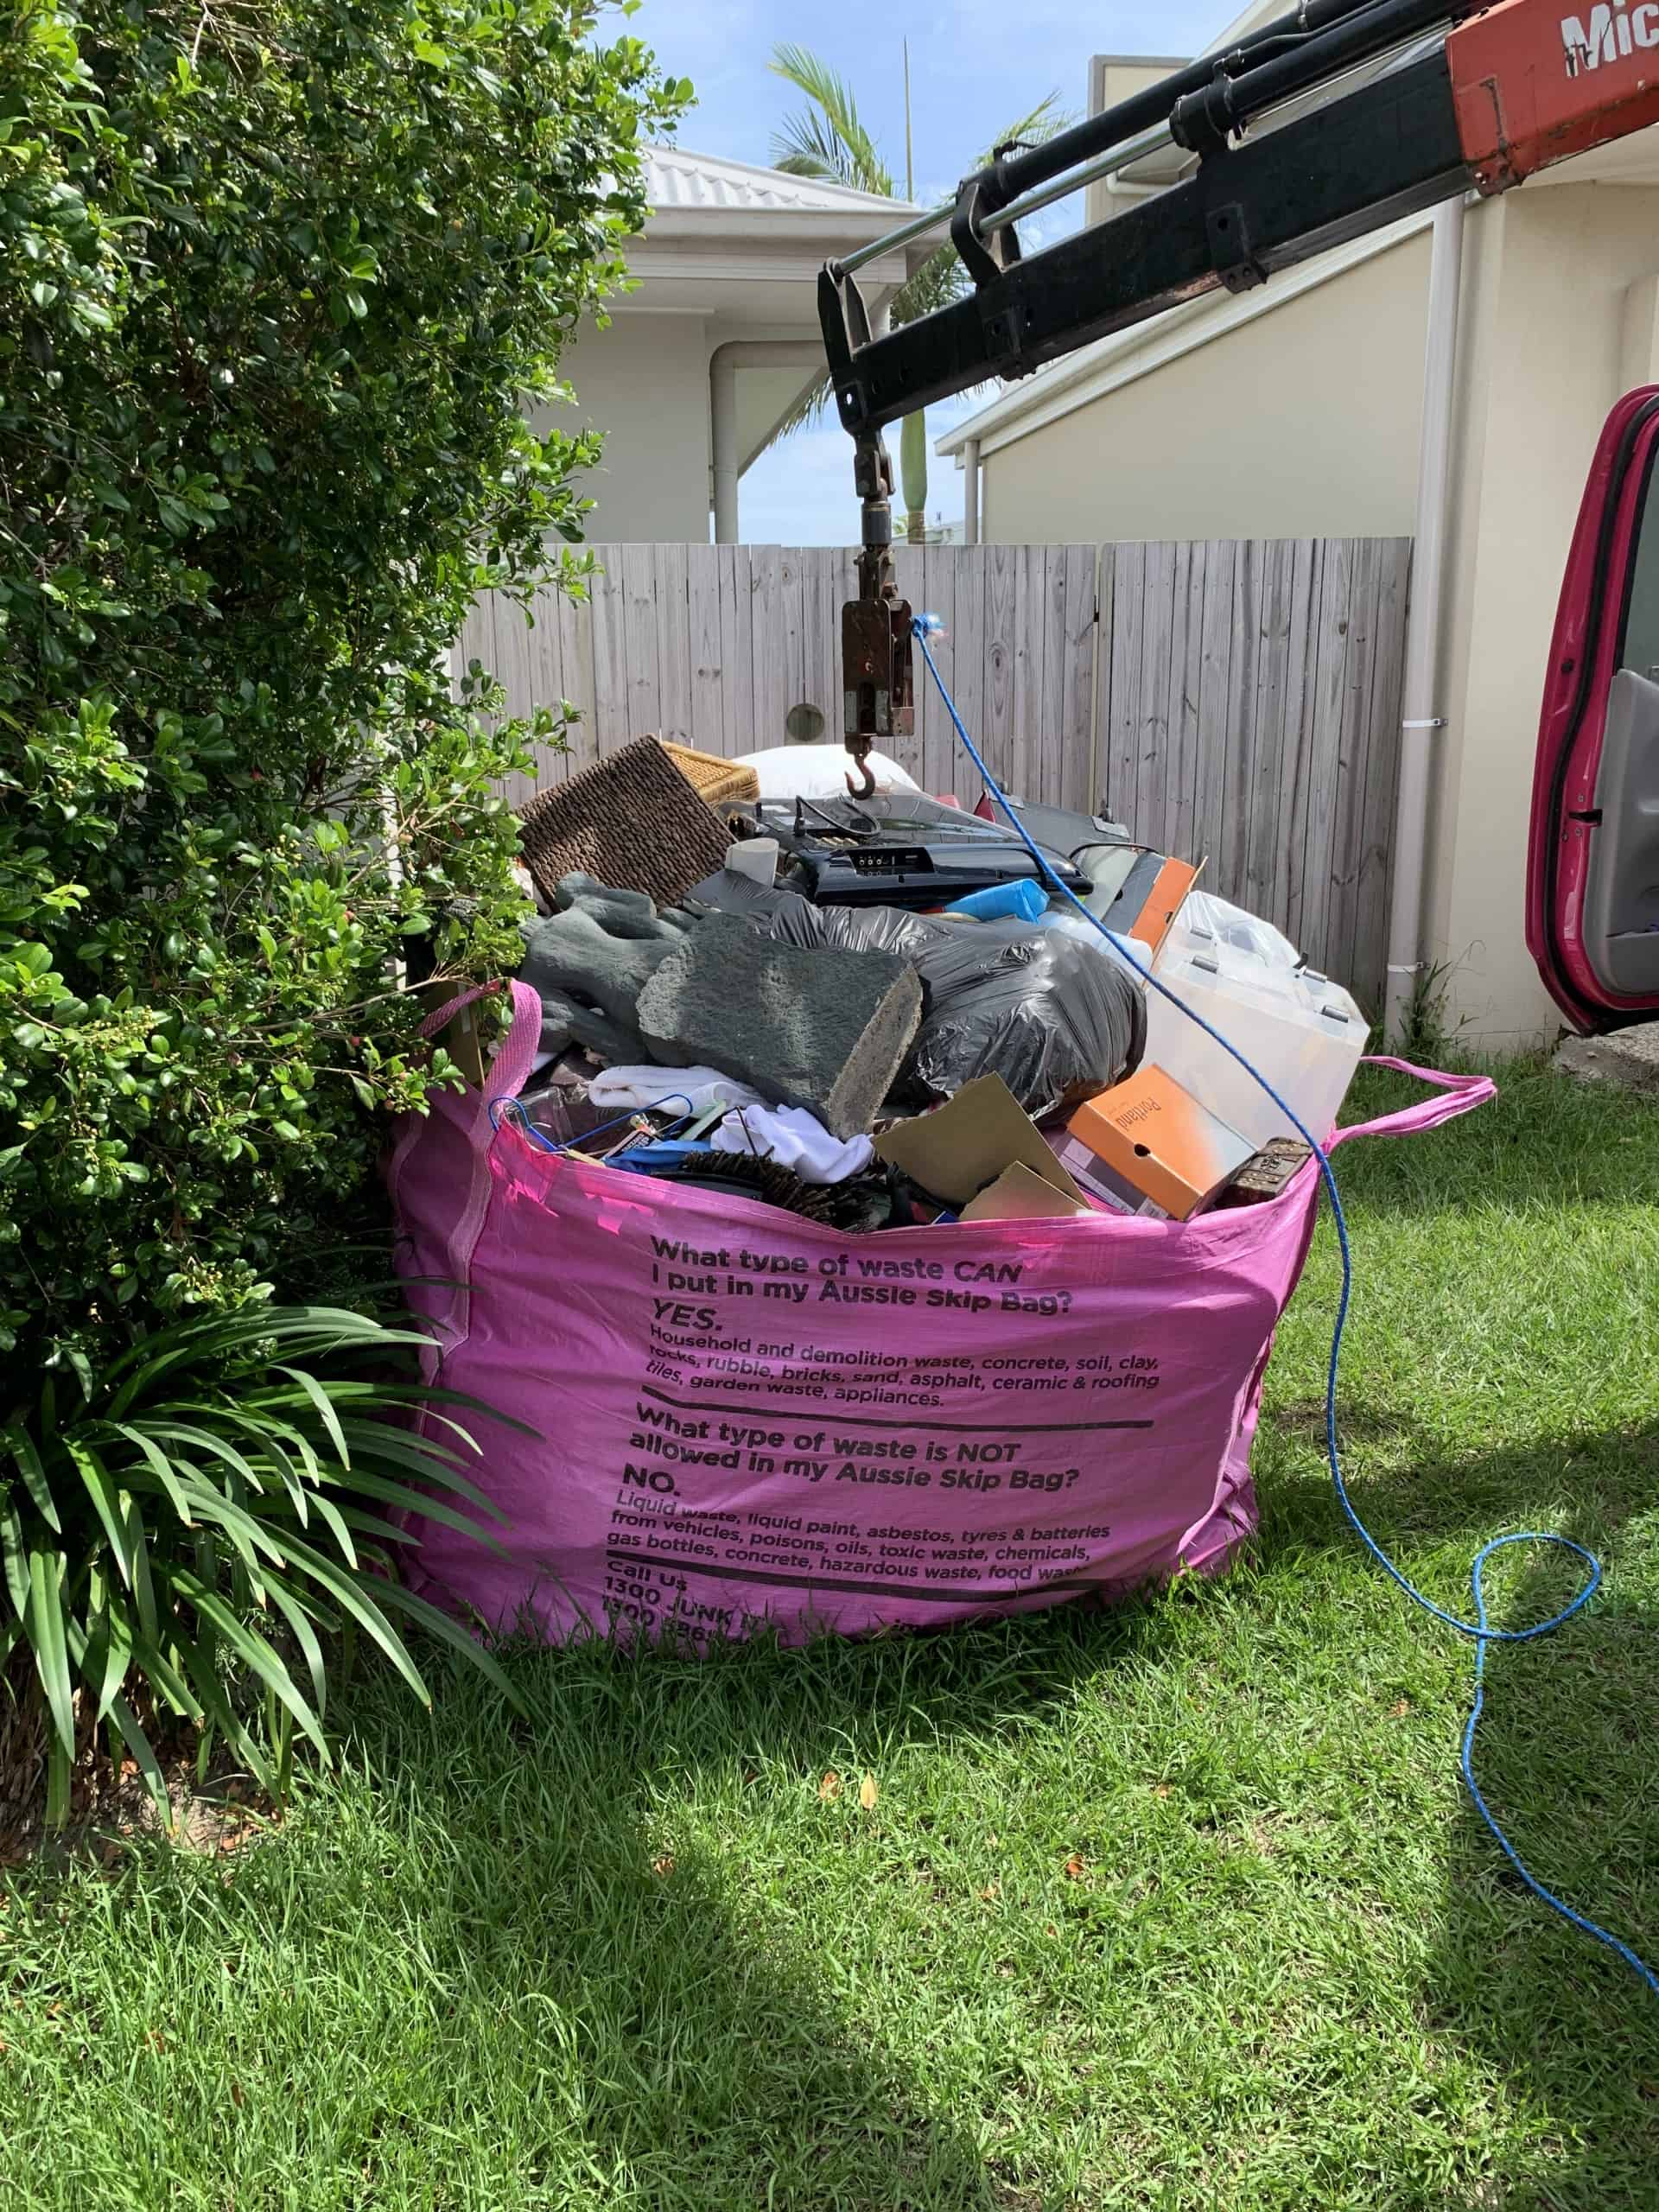 Dump it rubbish removal skip bin sunshine coast